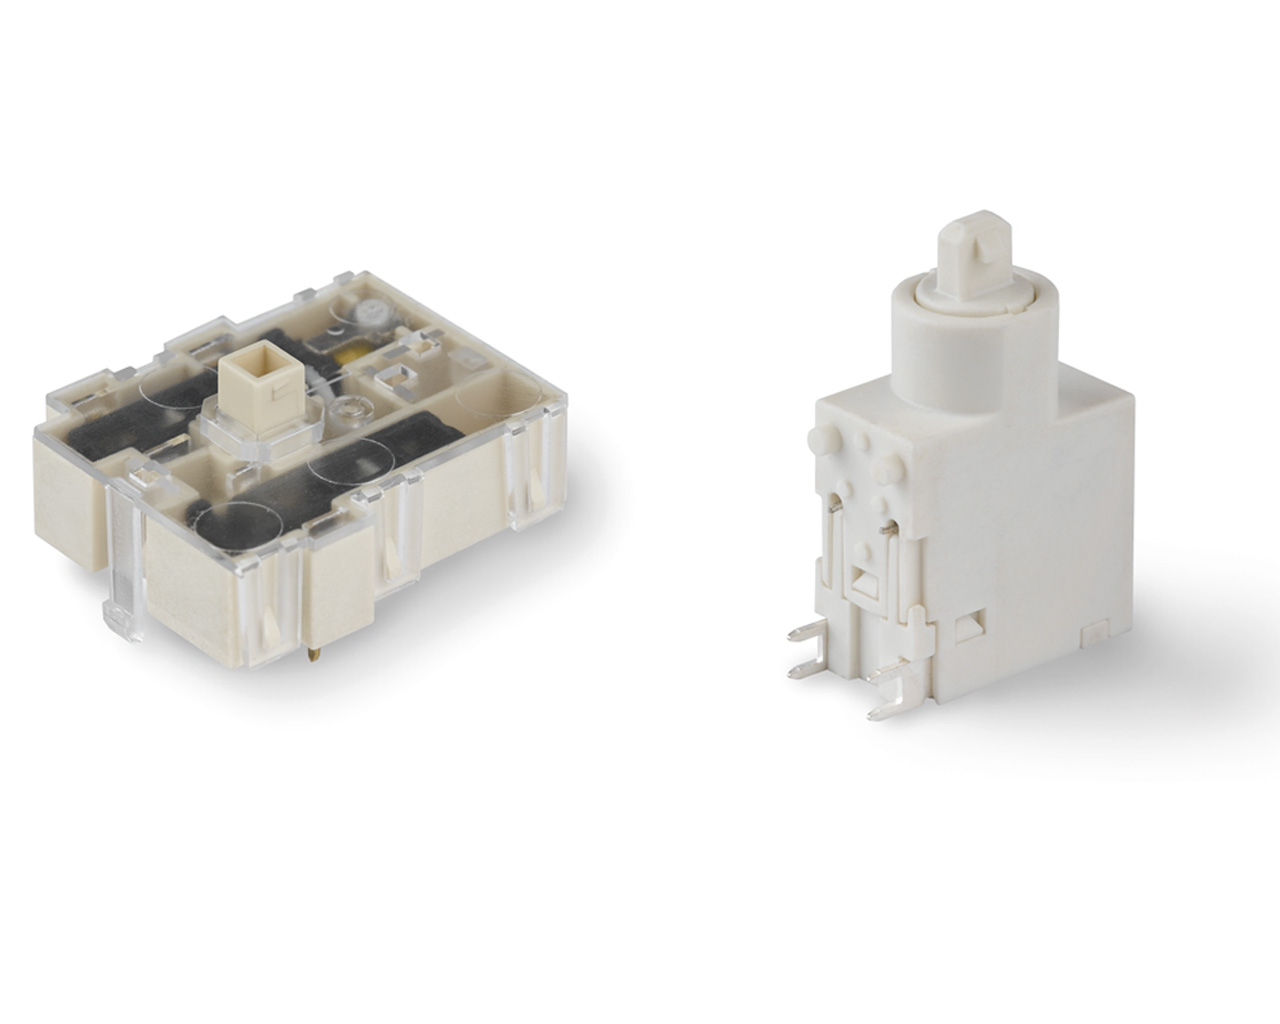 Johnson Electric TIPPMATIC Switches for Washing Machines